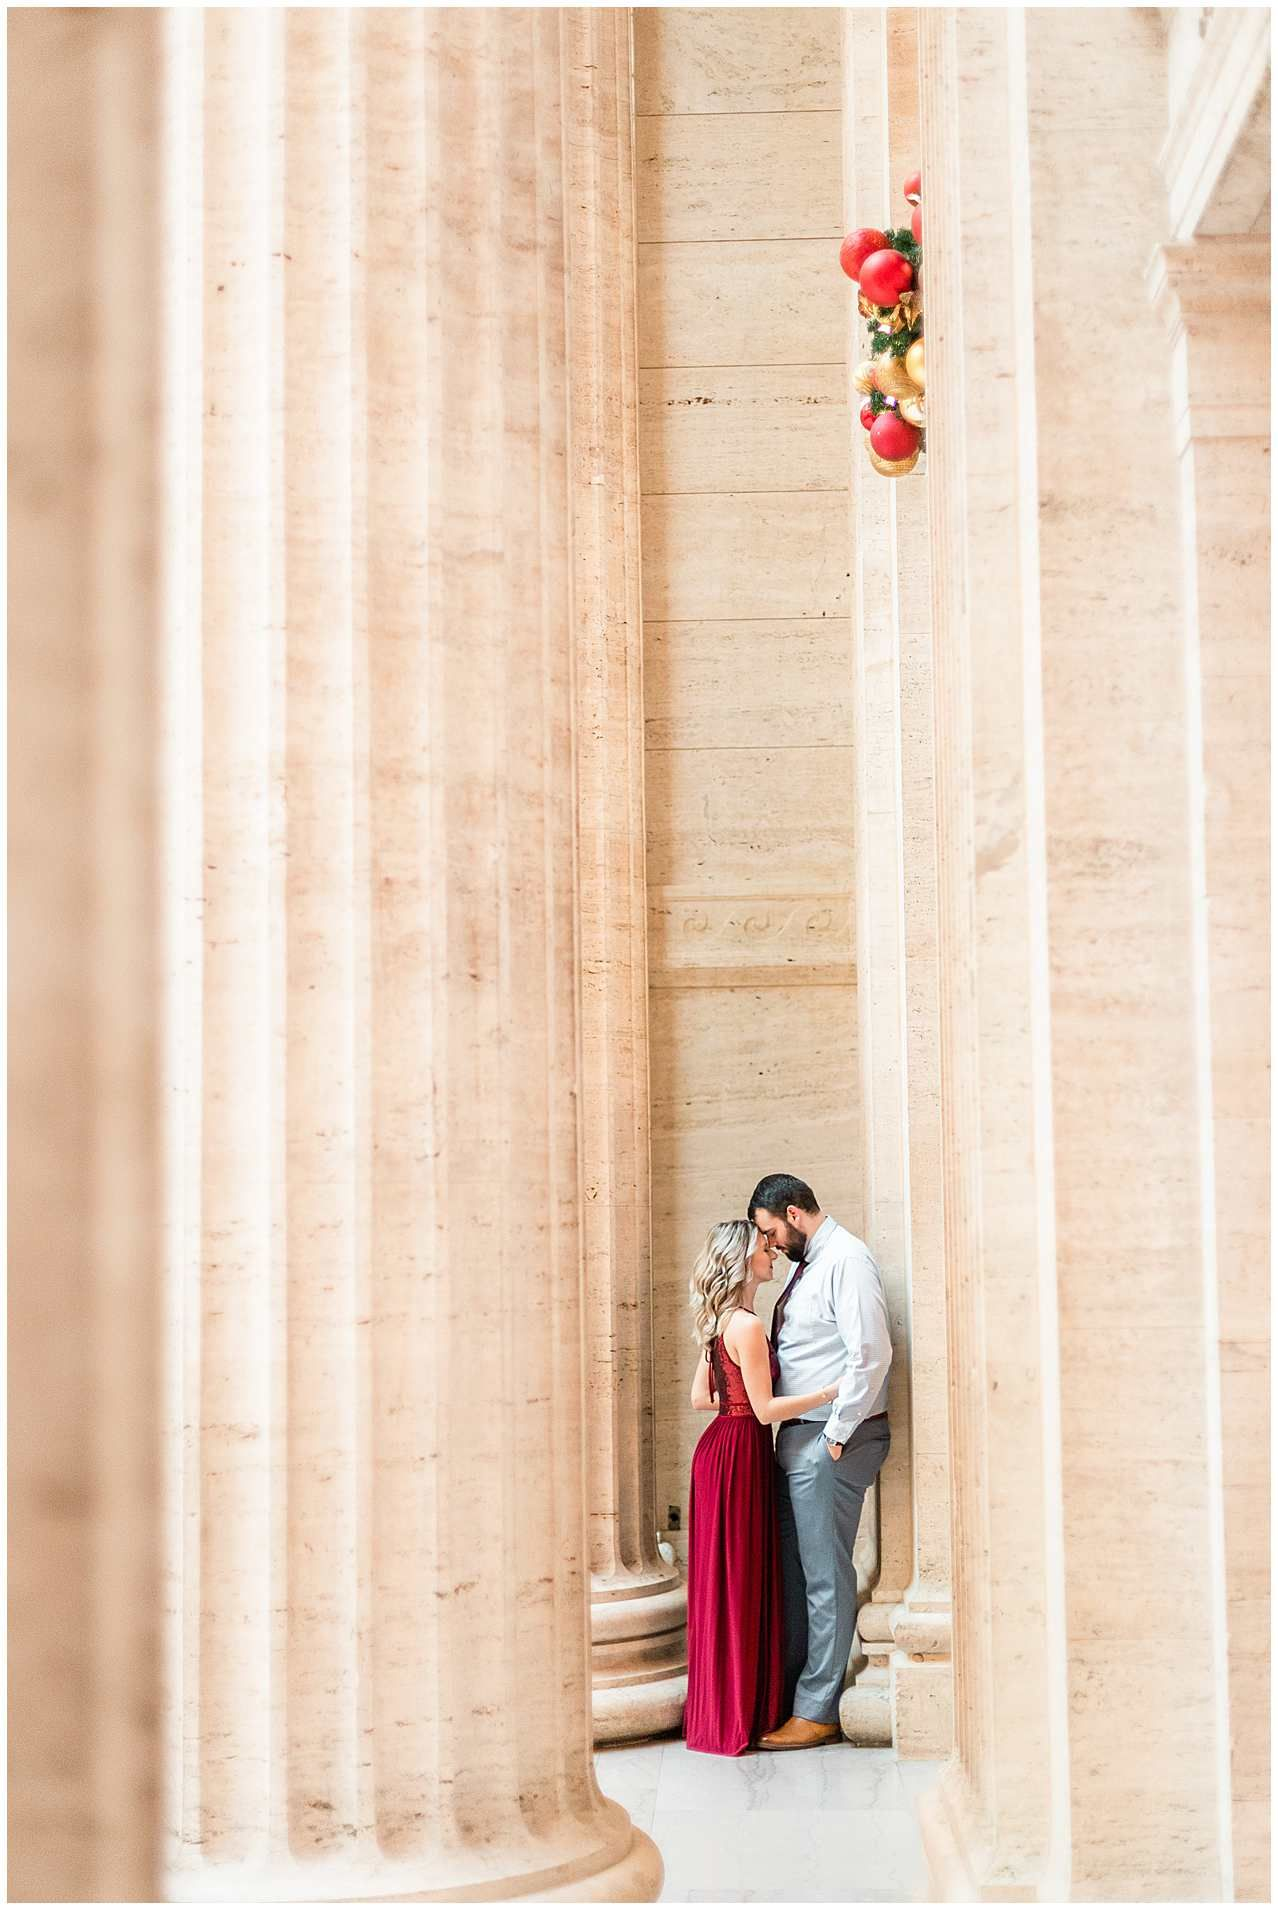 Union Station Christmas 2020 Chicago Union Station Engagement Photos at Christmas Elle Taylor